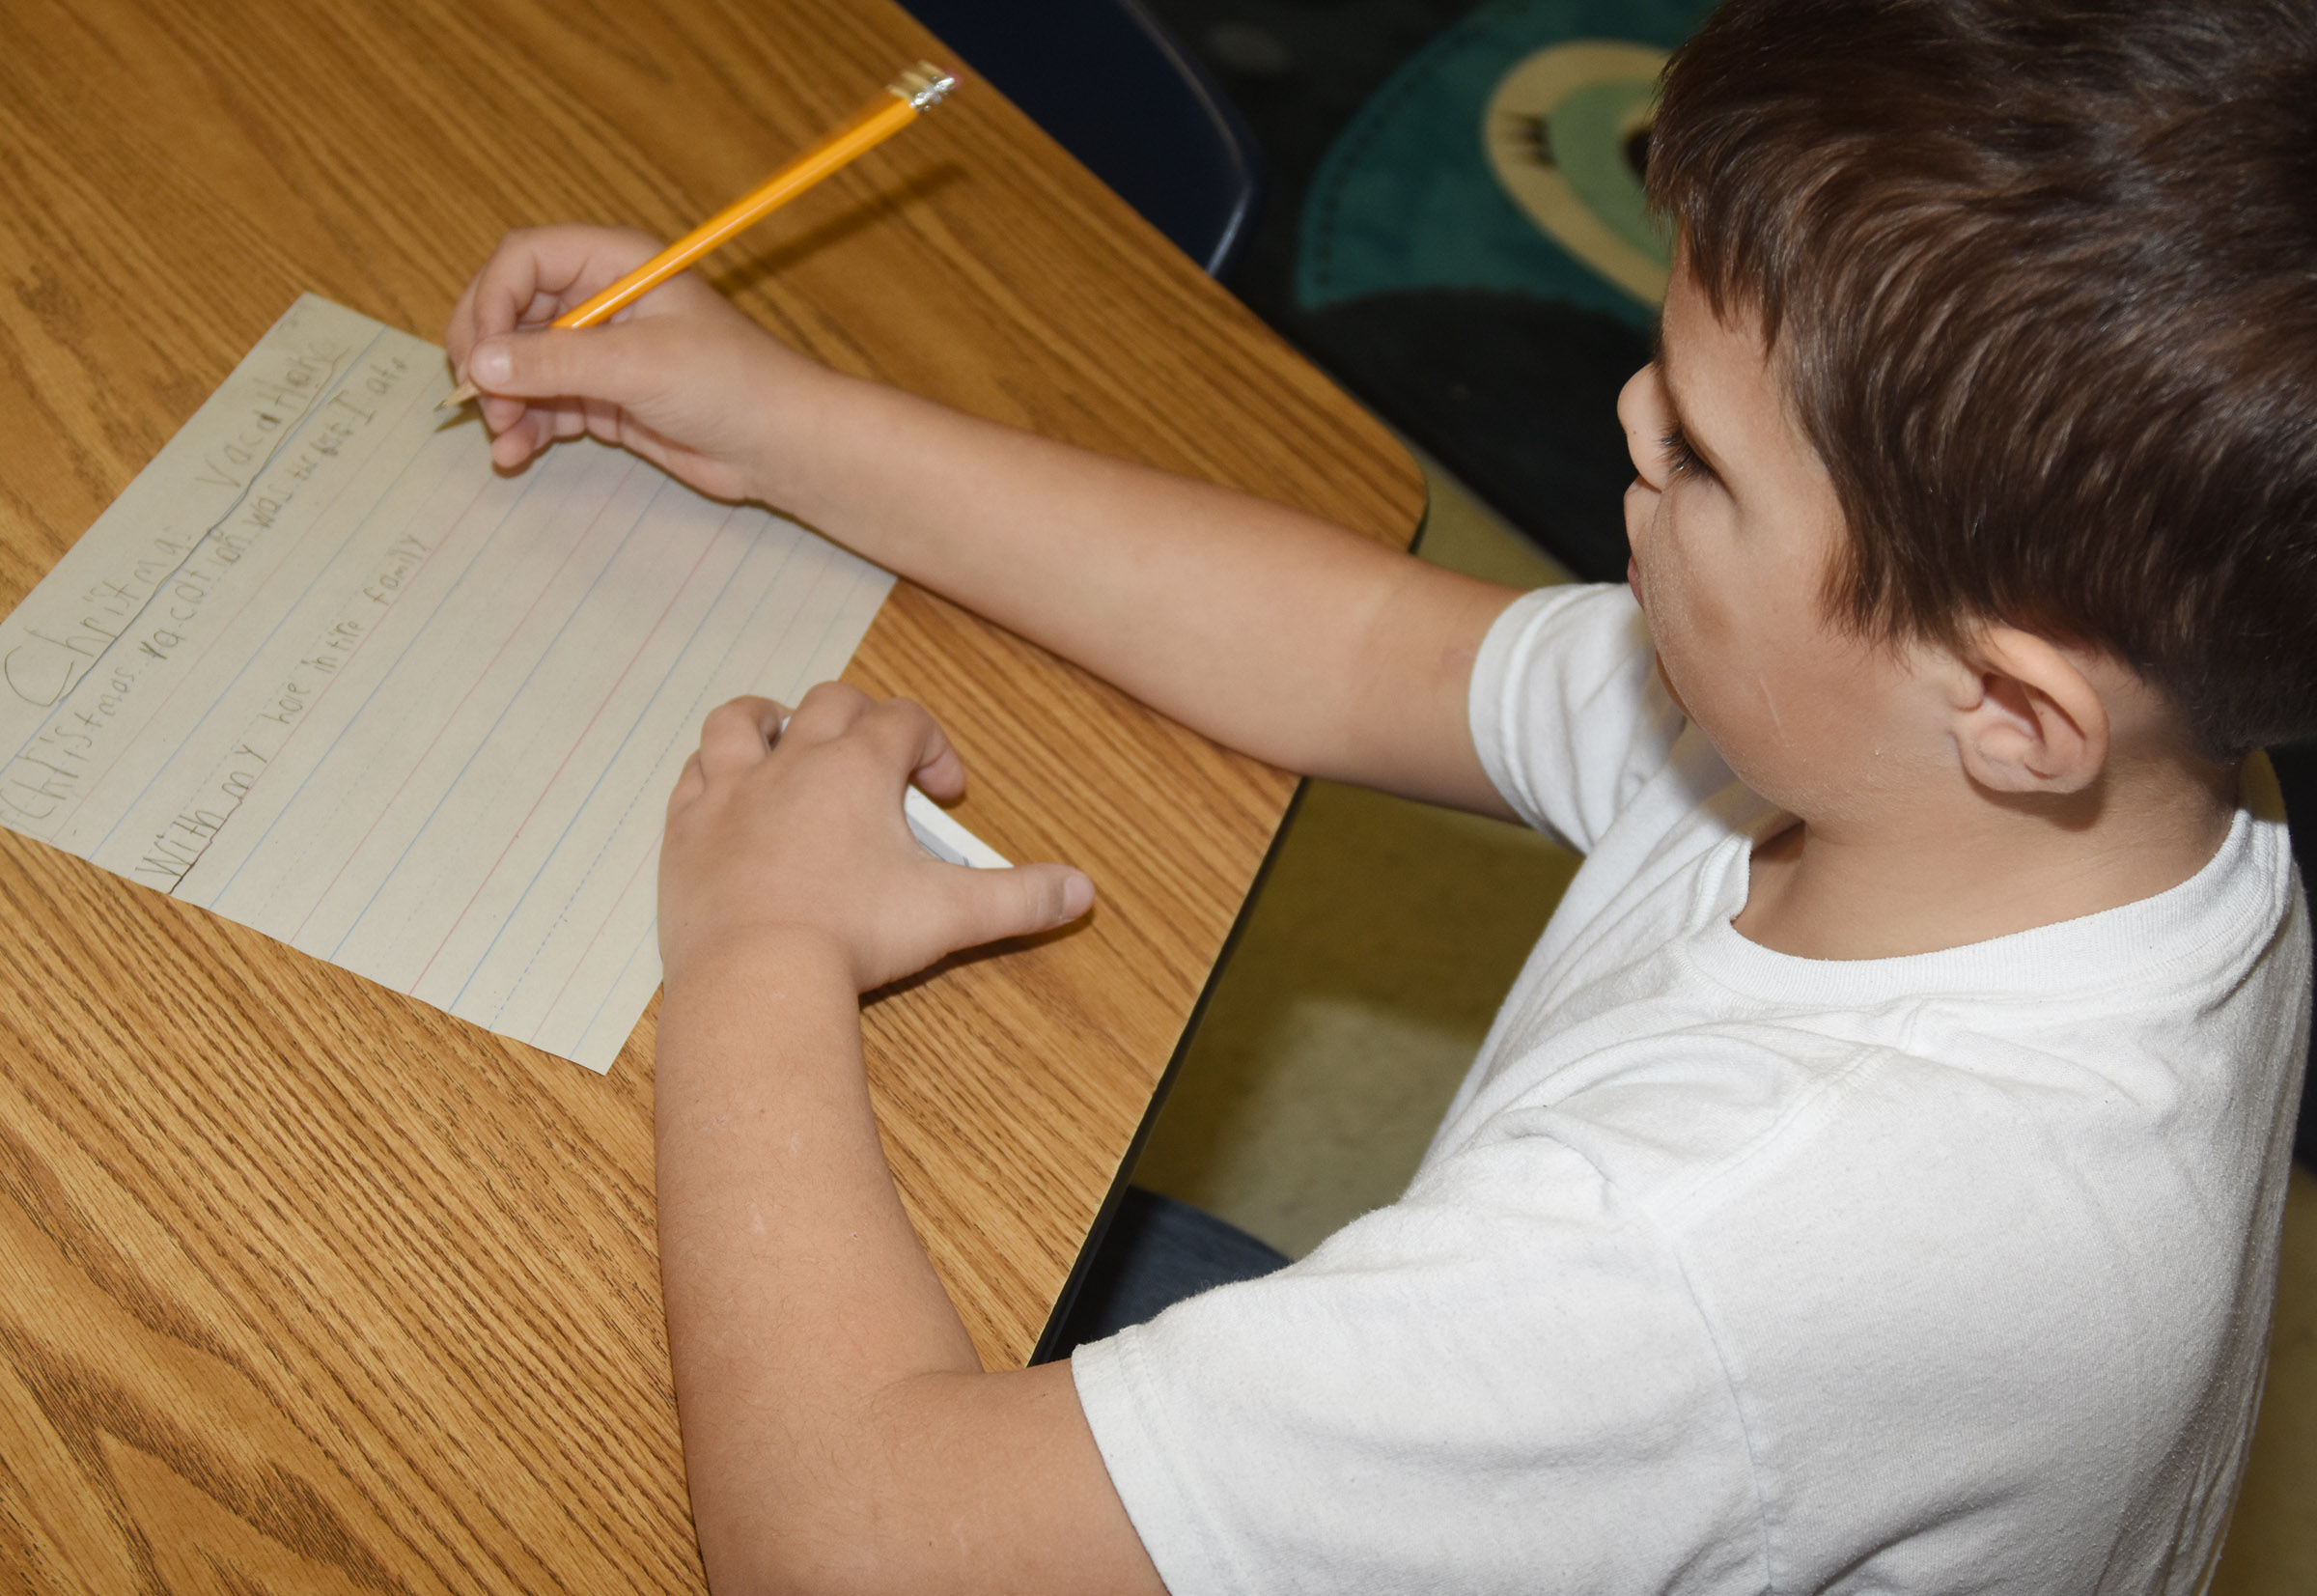 CES second-grader Jaxon Hunt writes about his Christmas vacation.